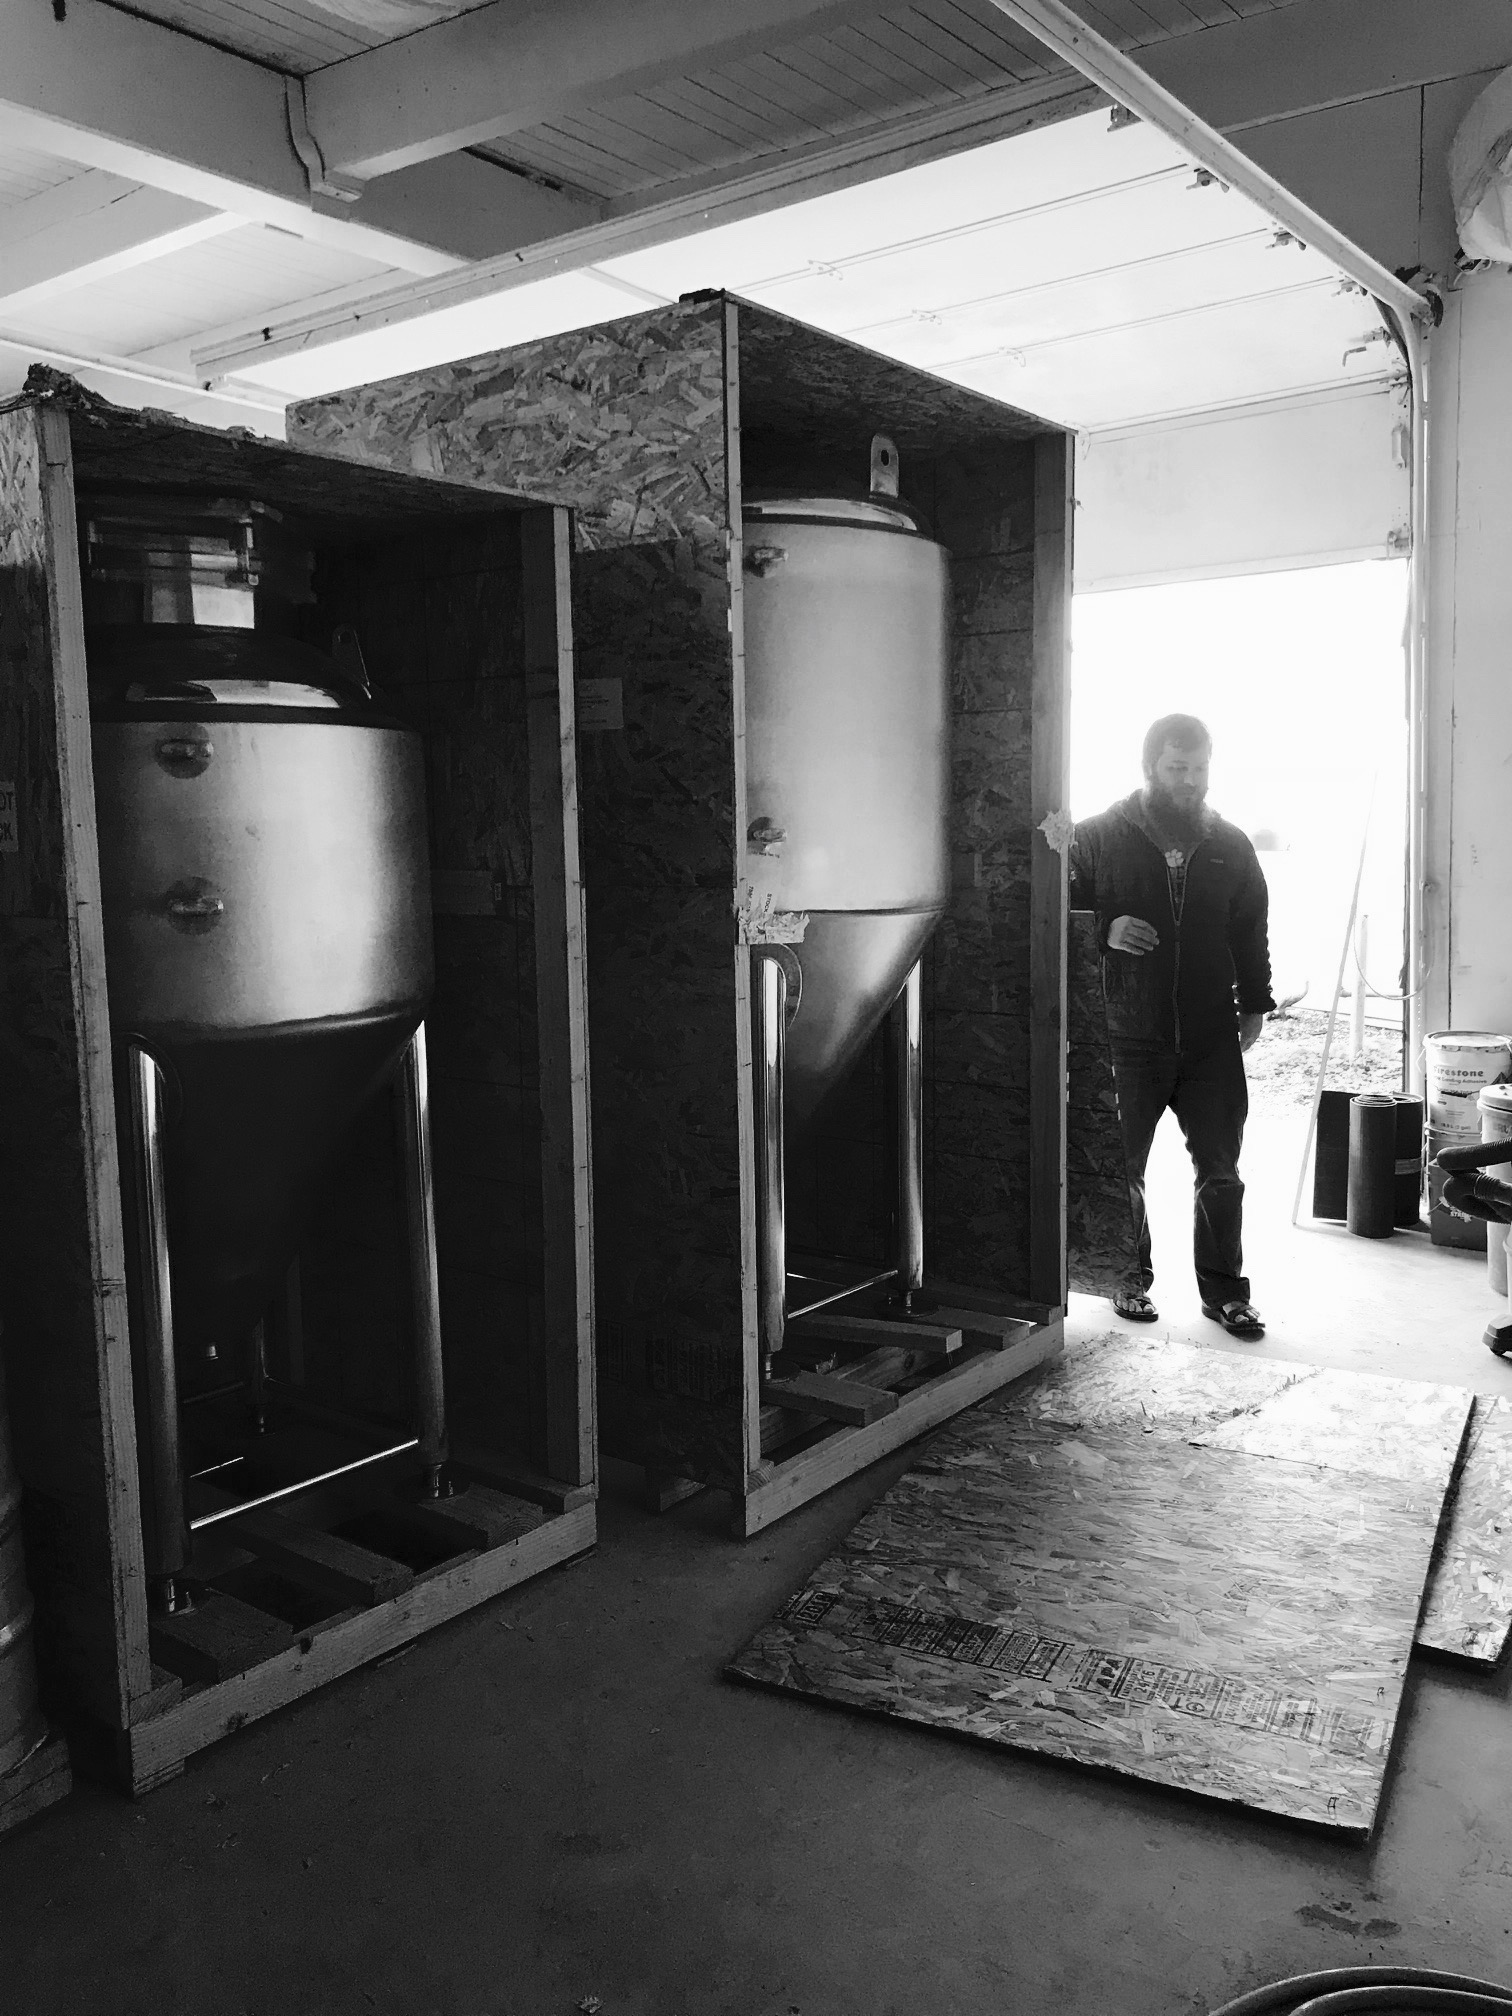 Unboxing the new fermenters at the Shattuck Way brewhouse entrance.